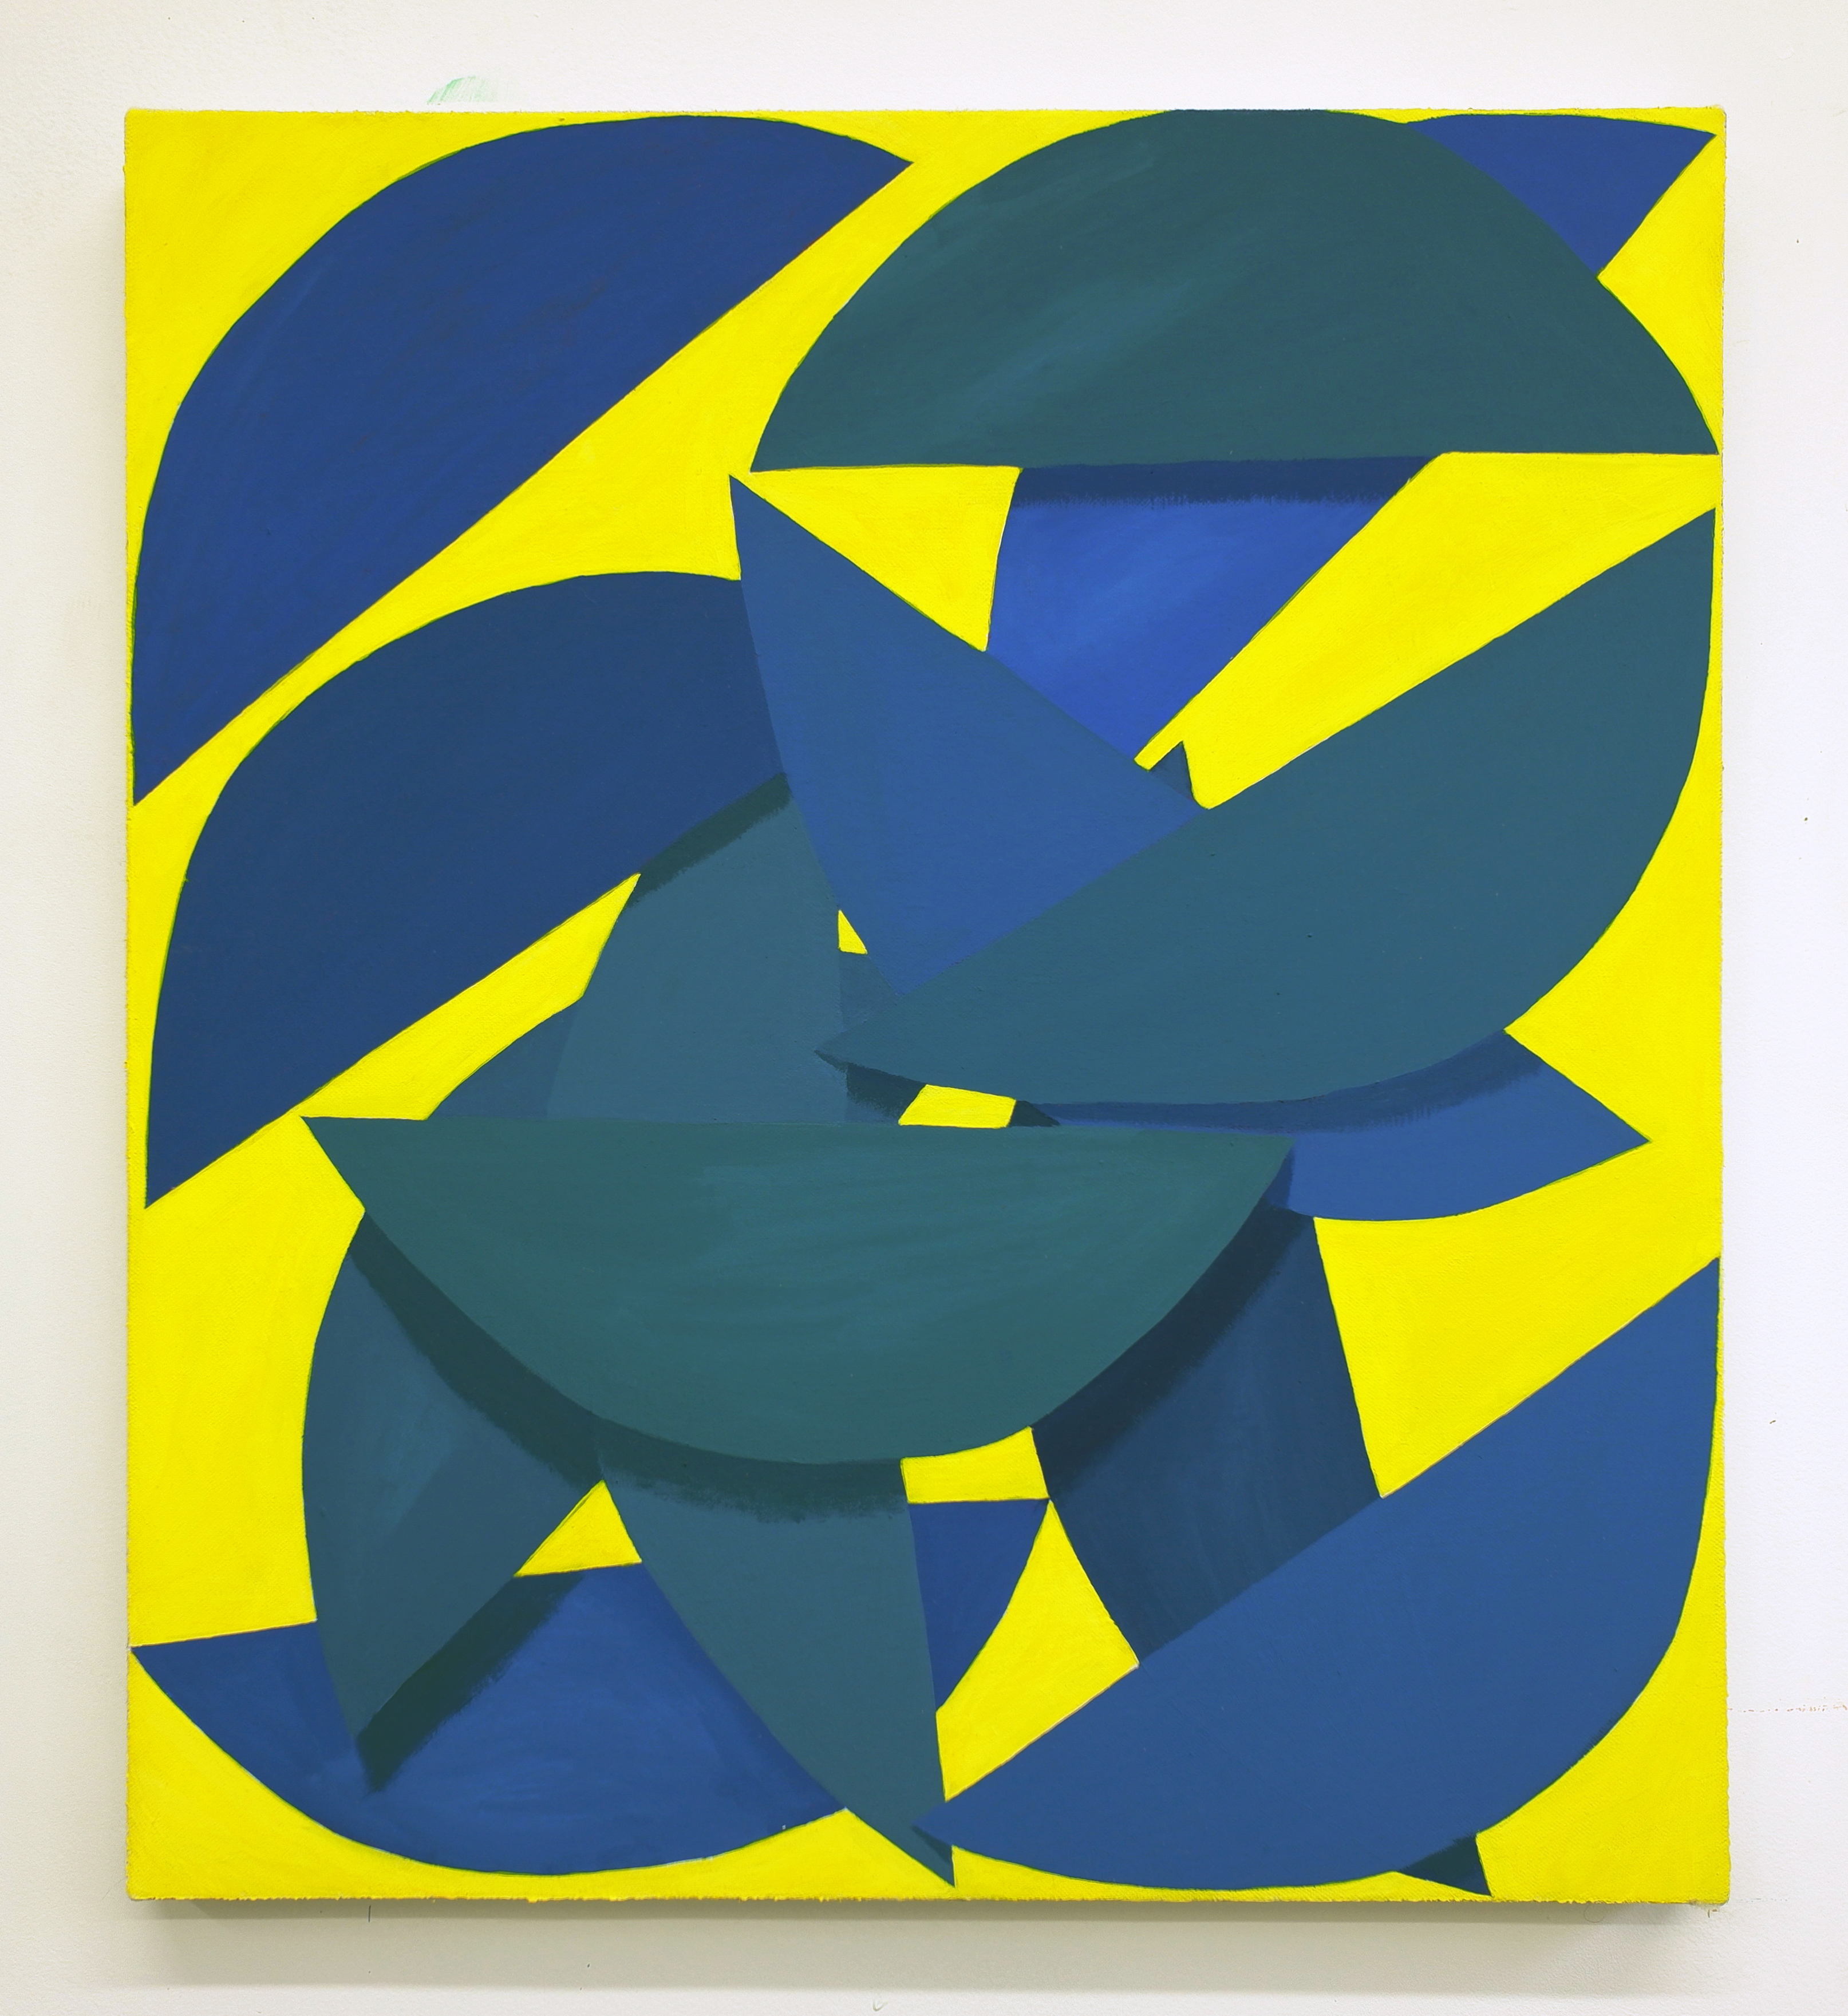 Corydon Cowansage, Yellow and Blue, 2019, acrylic and vinyl paint on canvas, 20 x 18 inches